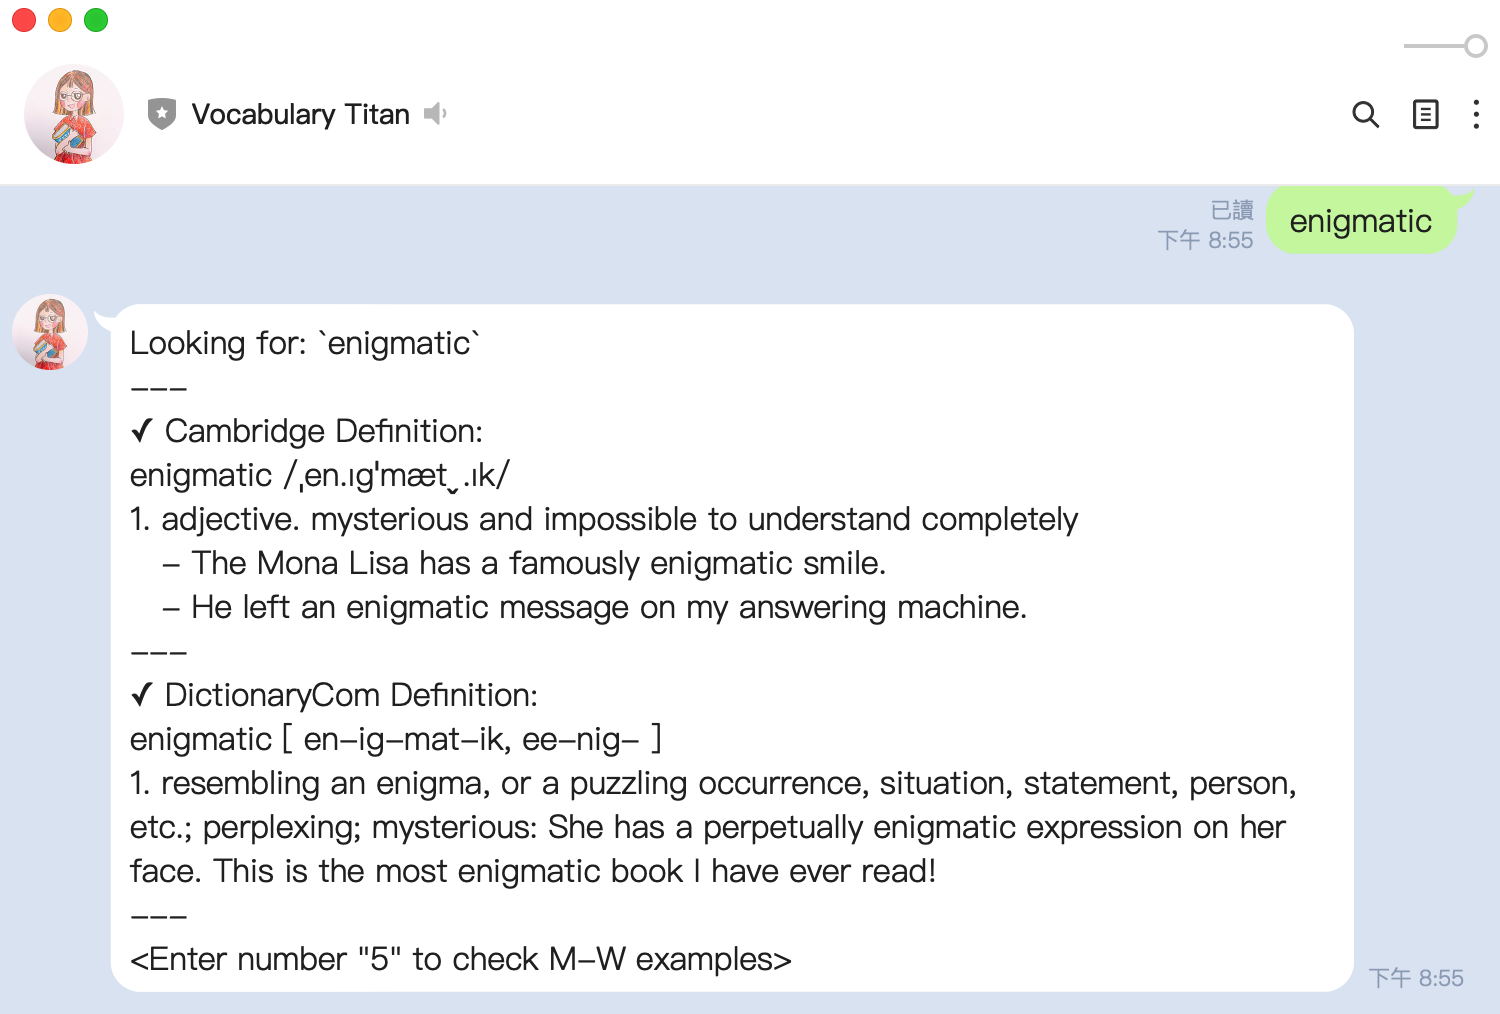 Vocabulary Titan 使用情境